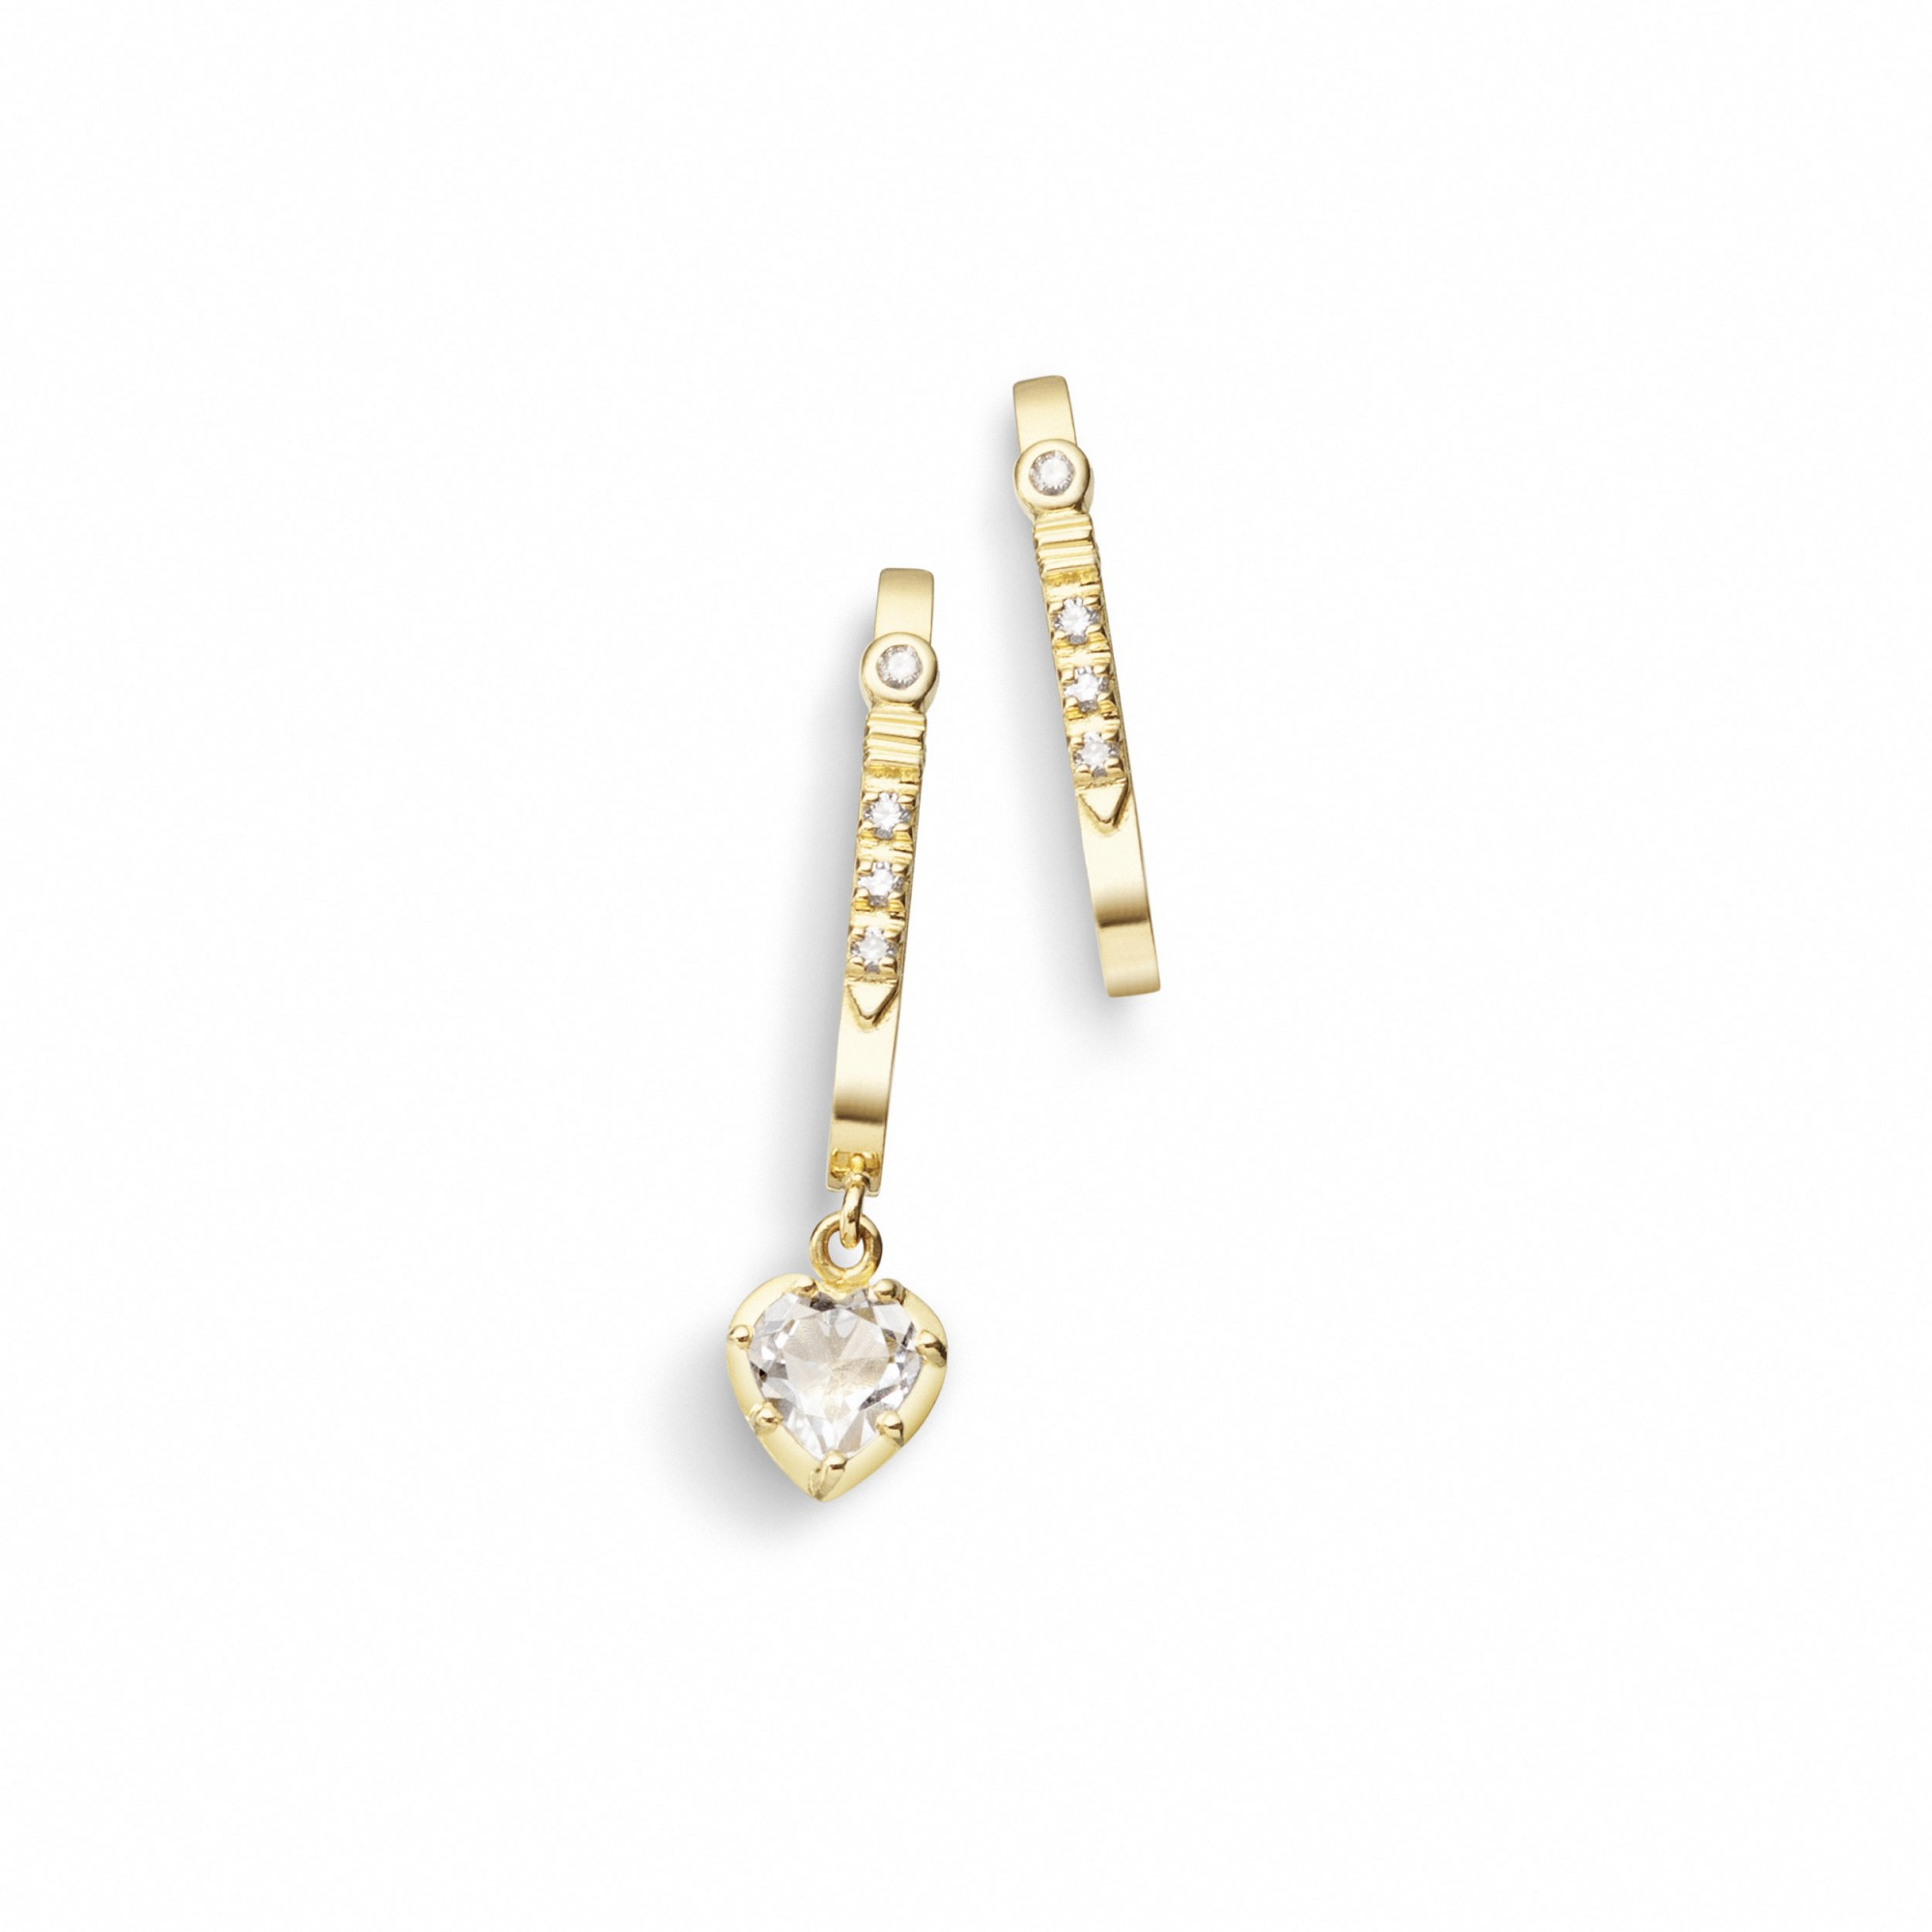 Brinco de Ouro 18K e Diamantes - Crush Collection